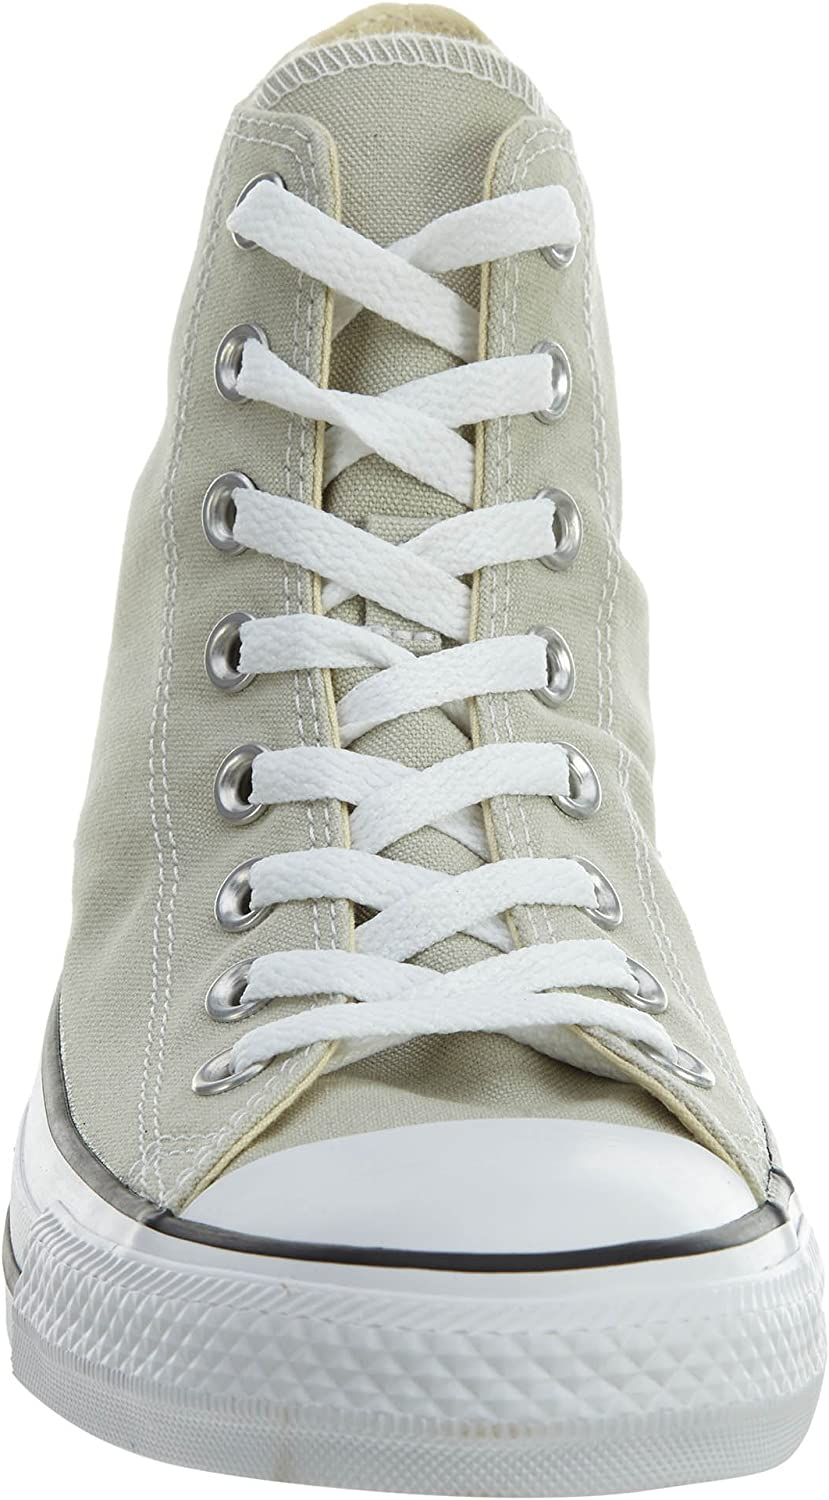 Converse Optical White, Sneakers Basses Mixte Light Surplus